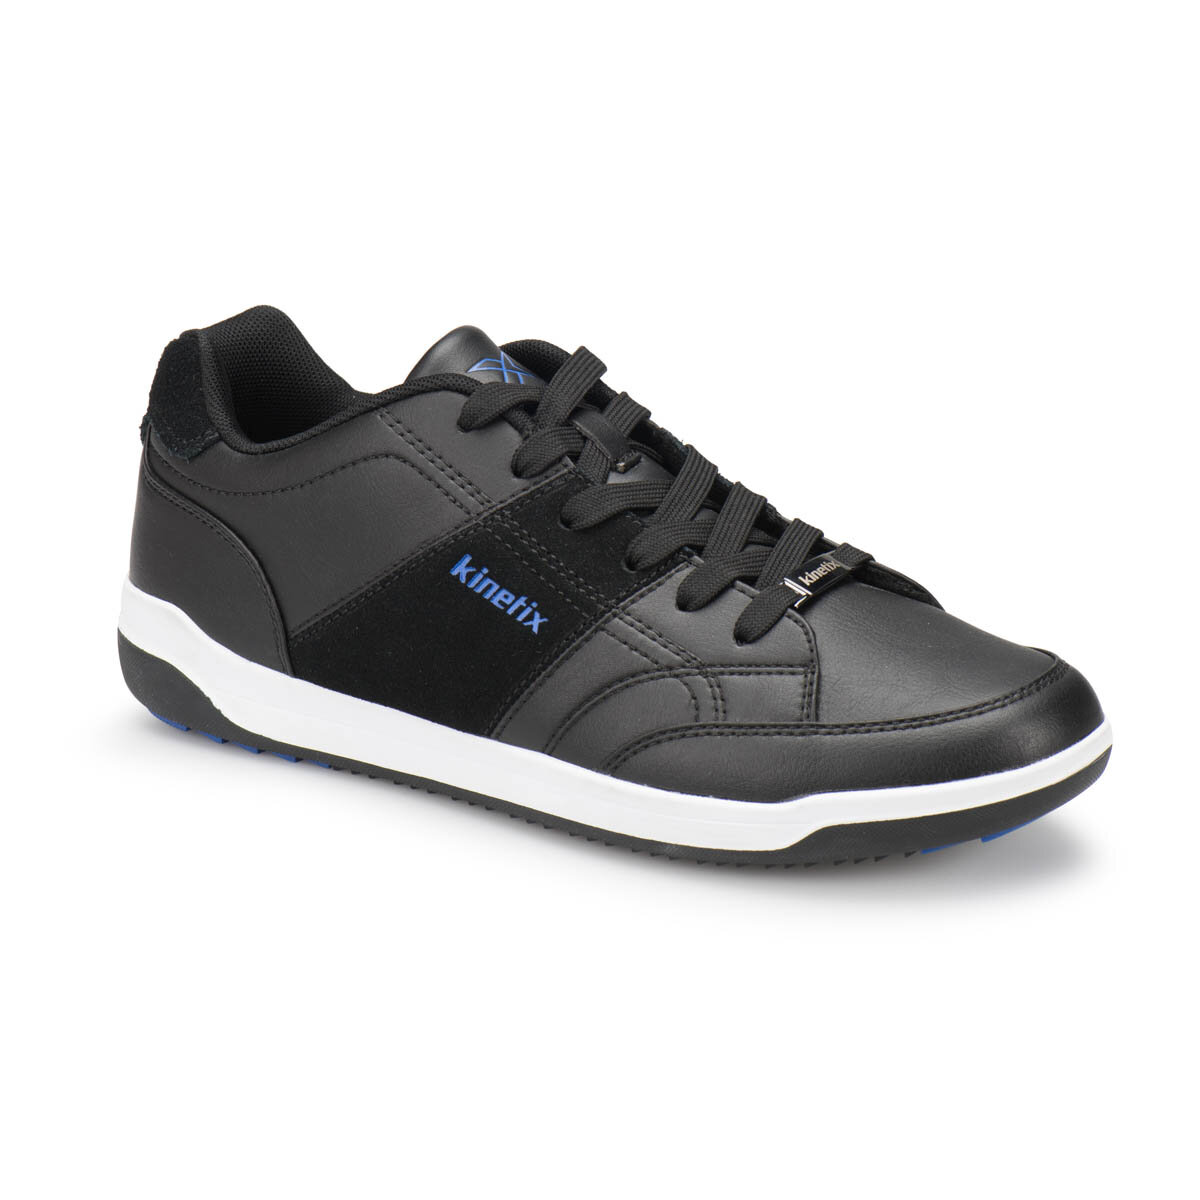 FLO CODY Black Men 'S Sneaker Shoes KINETIX